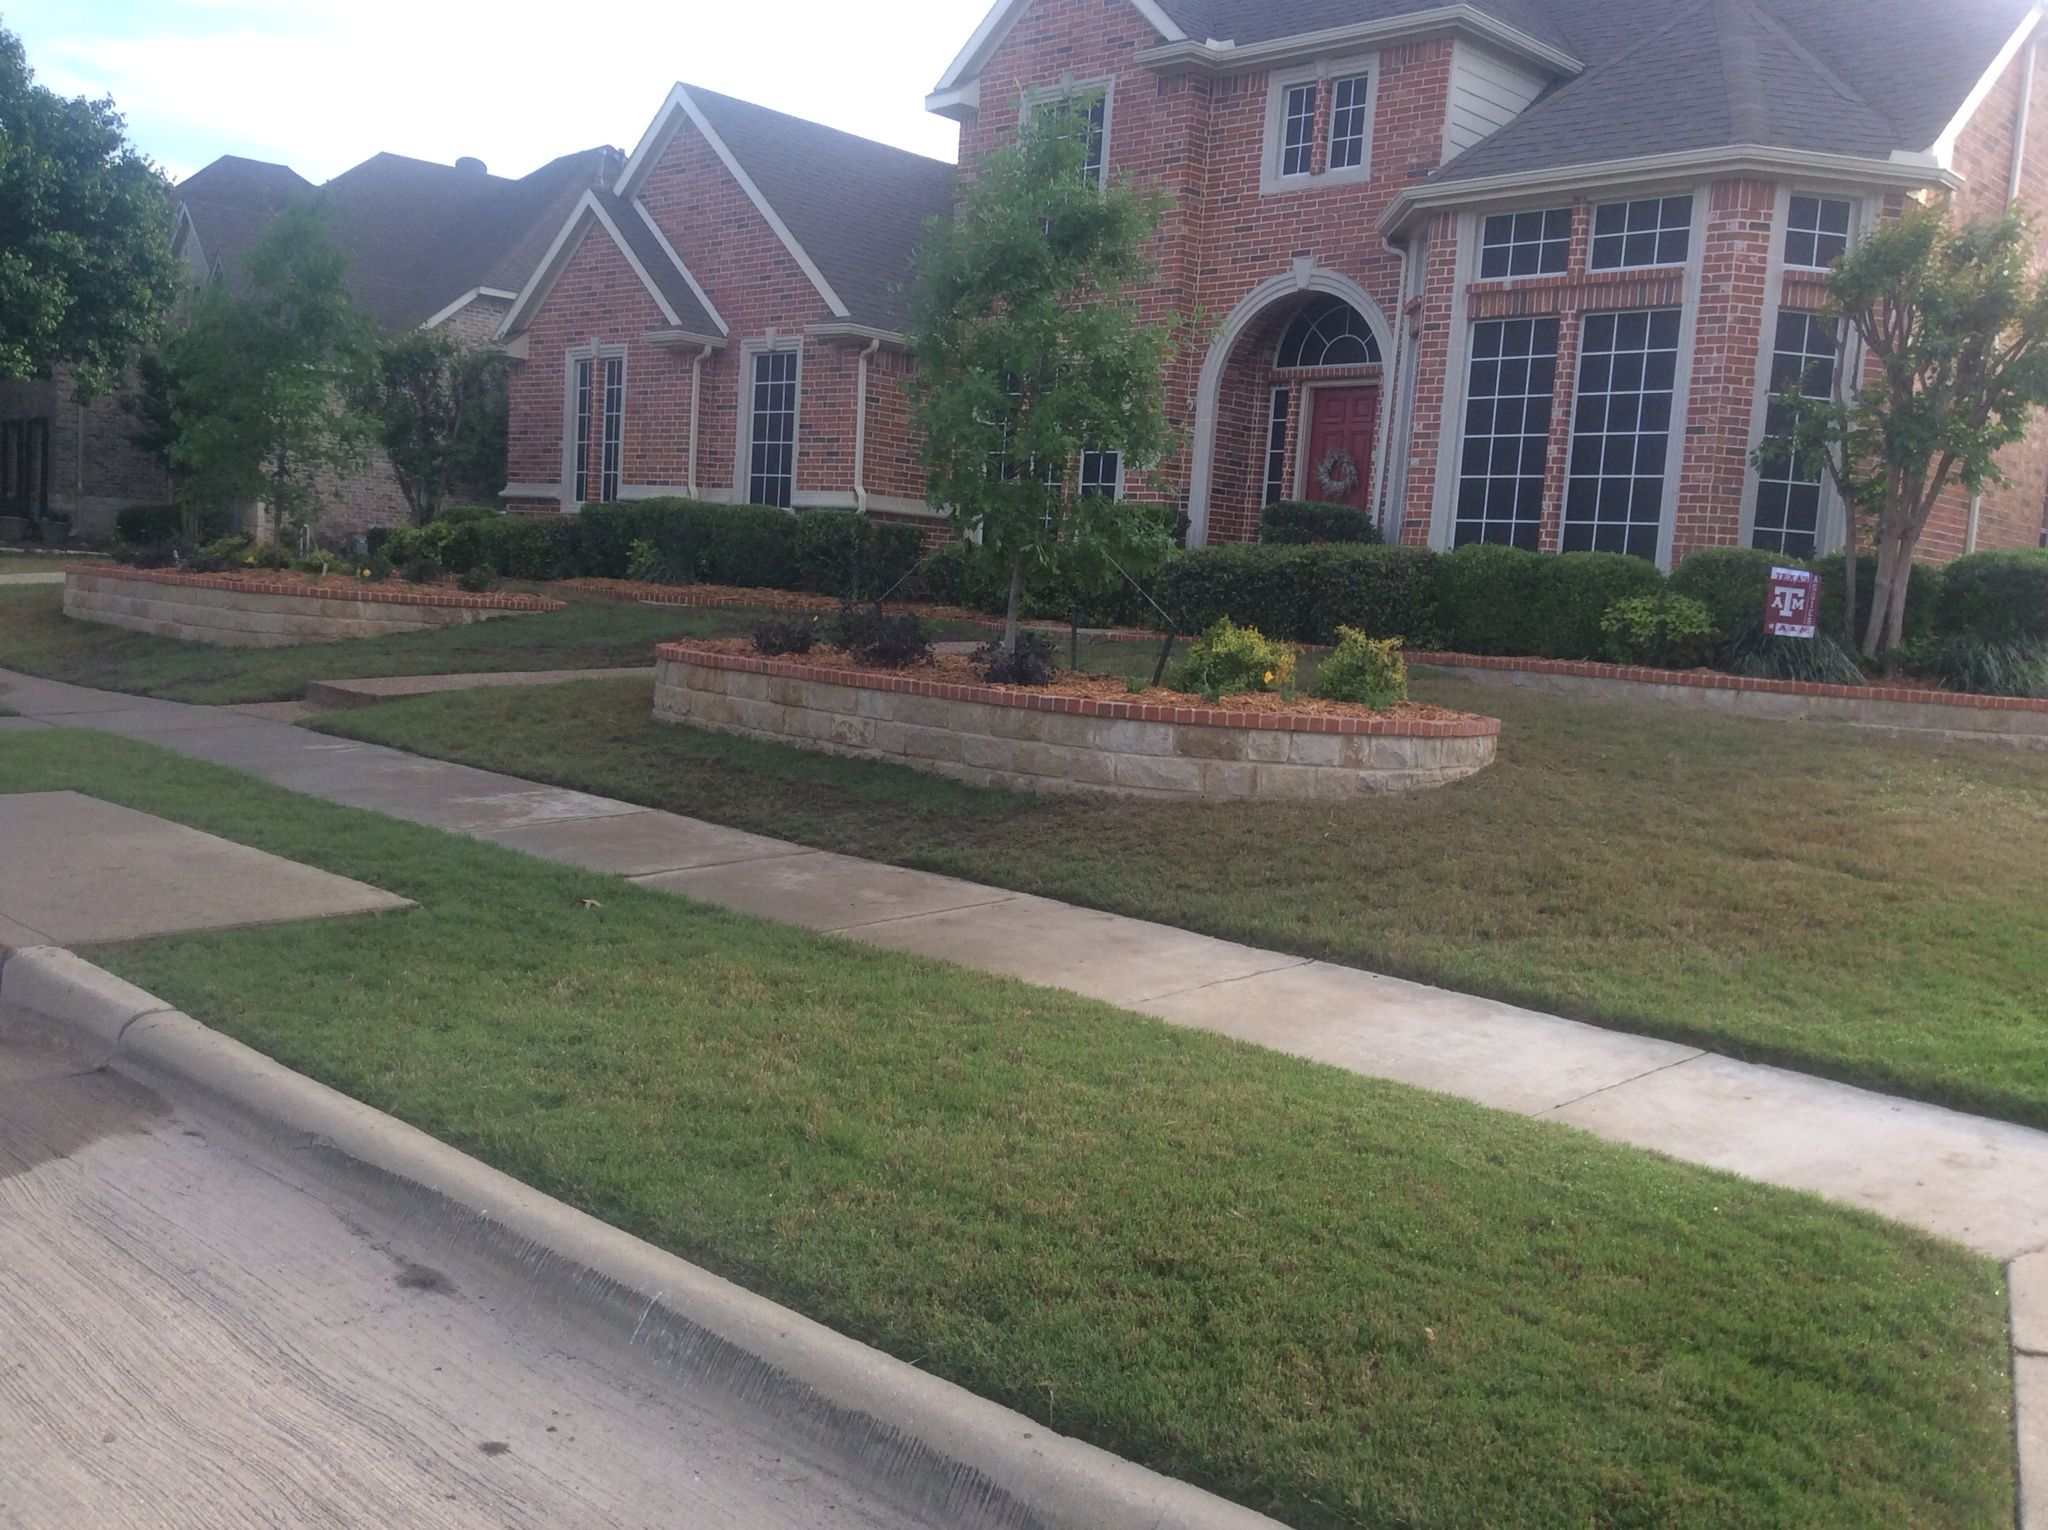 Etonnant Front Lawn Landscape Design With Trees, Shrubs And Stone/brick Border.